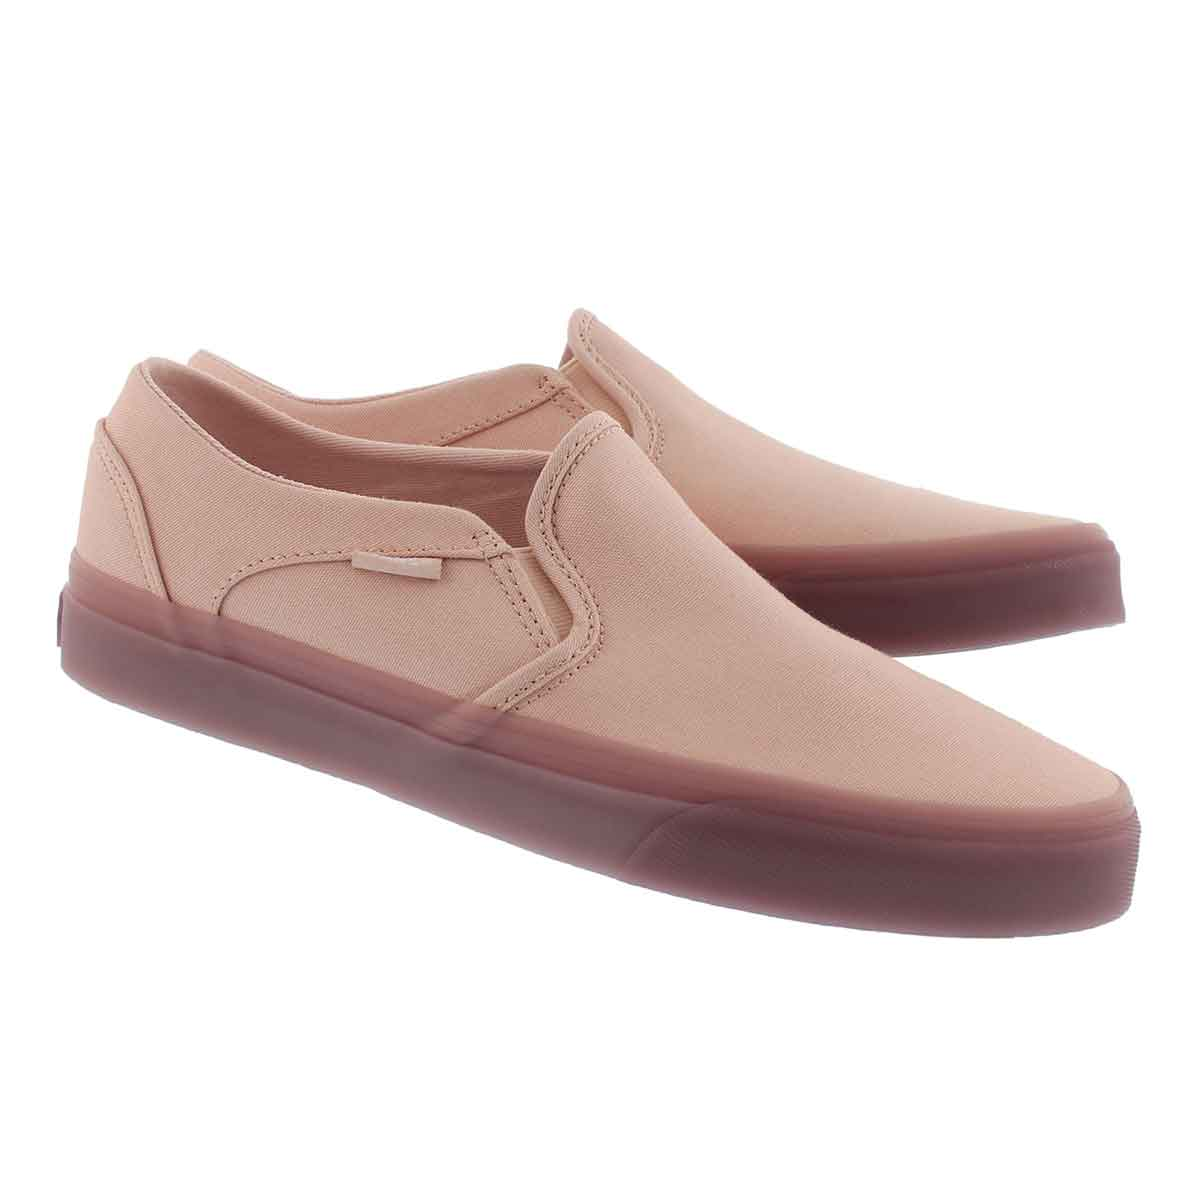 Lds Asher icy peach slip on